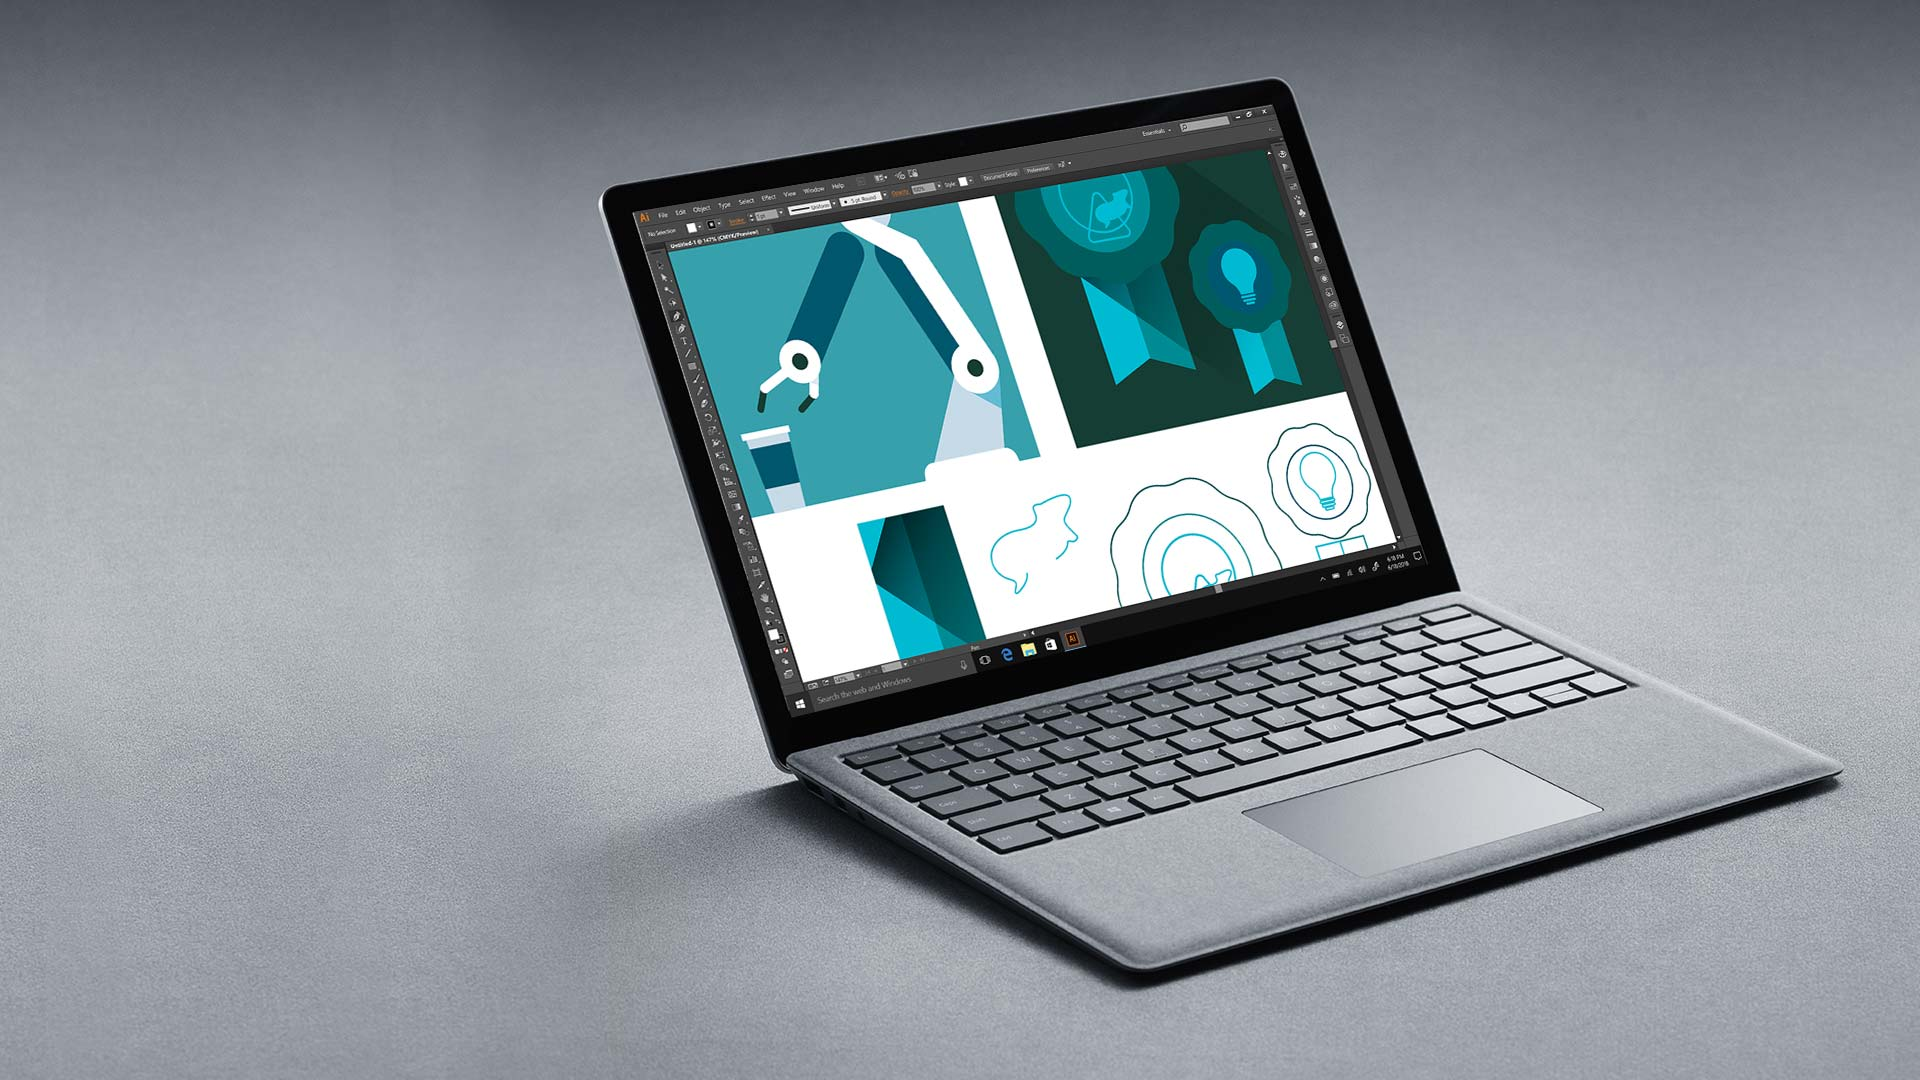 Platina (zilverkleurige) Surface Laptop met Adobe Illustrator-scherm.